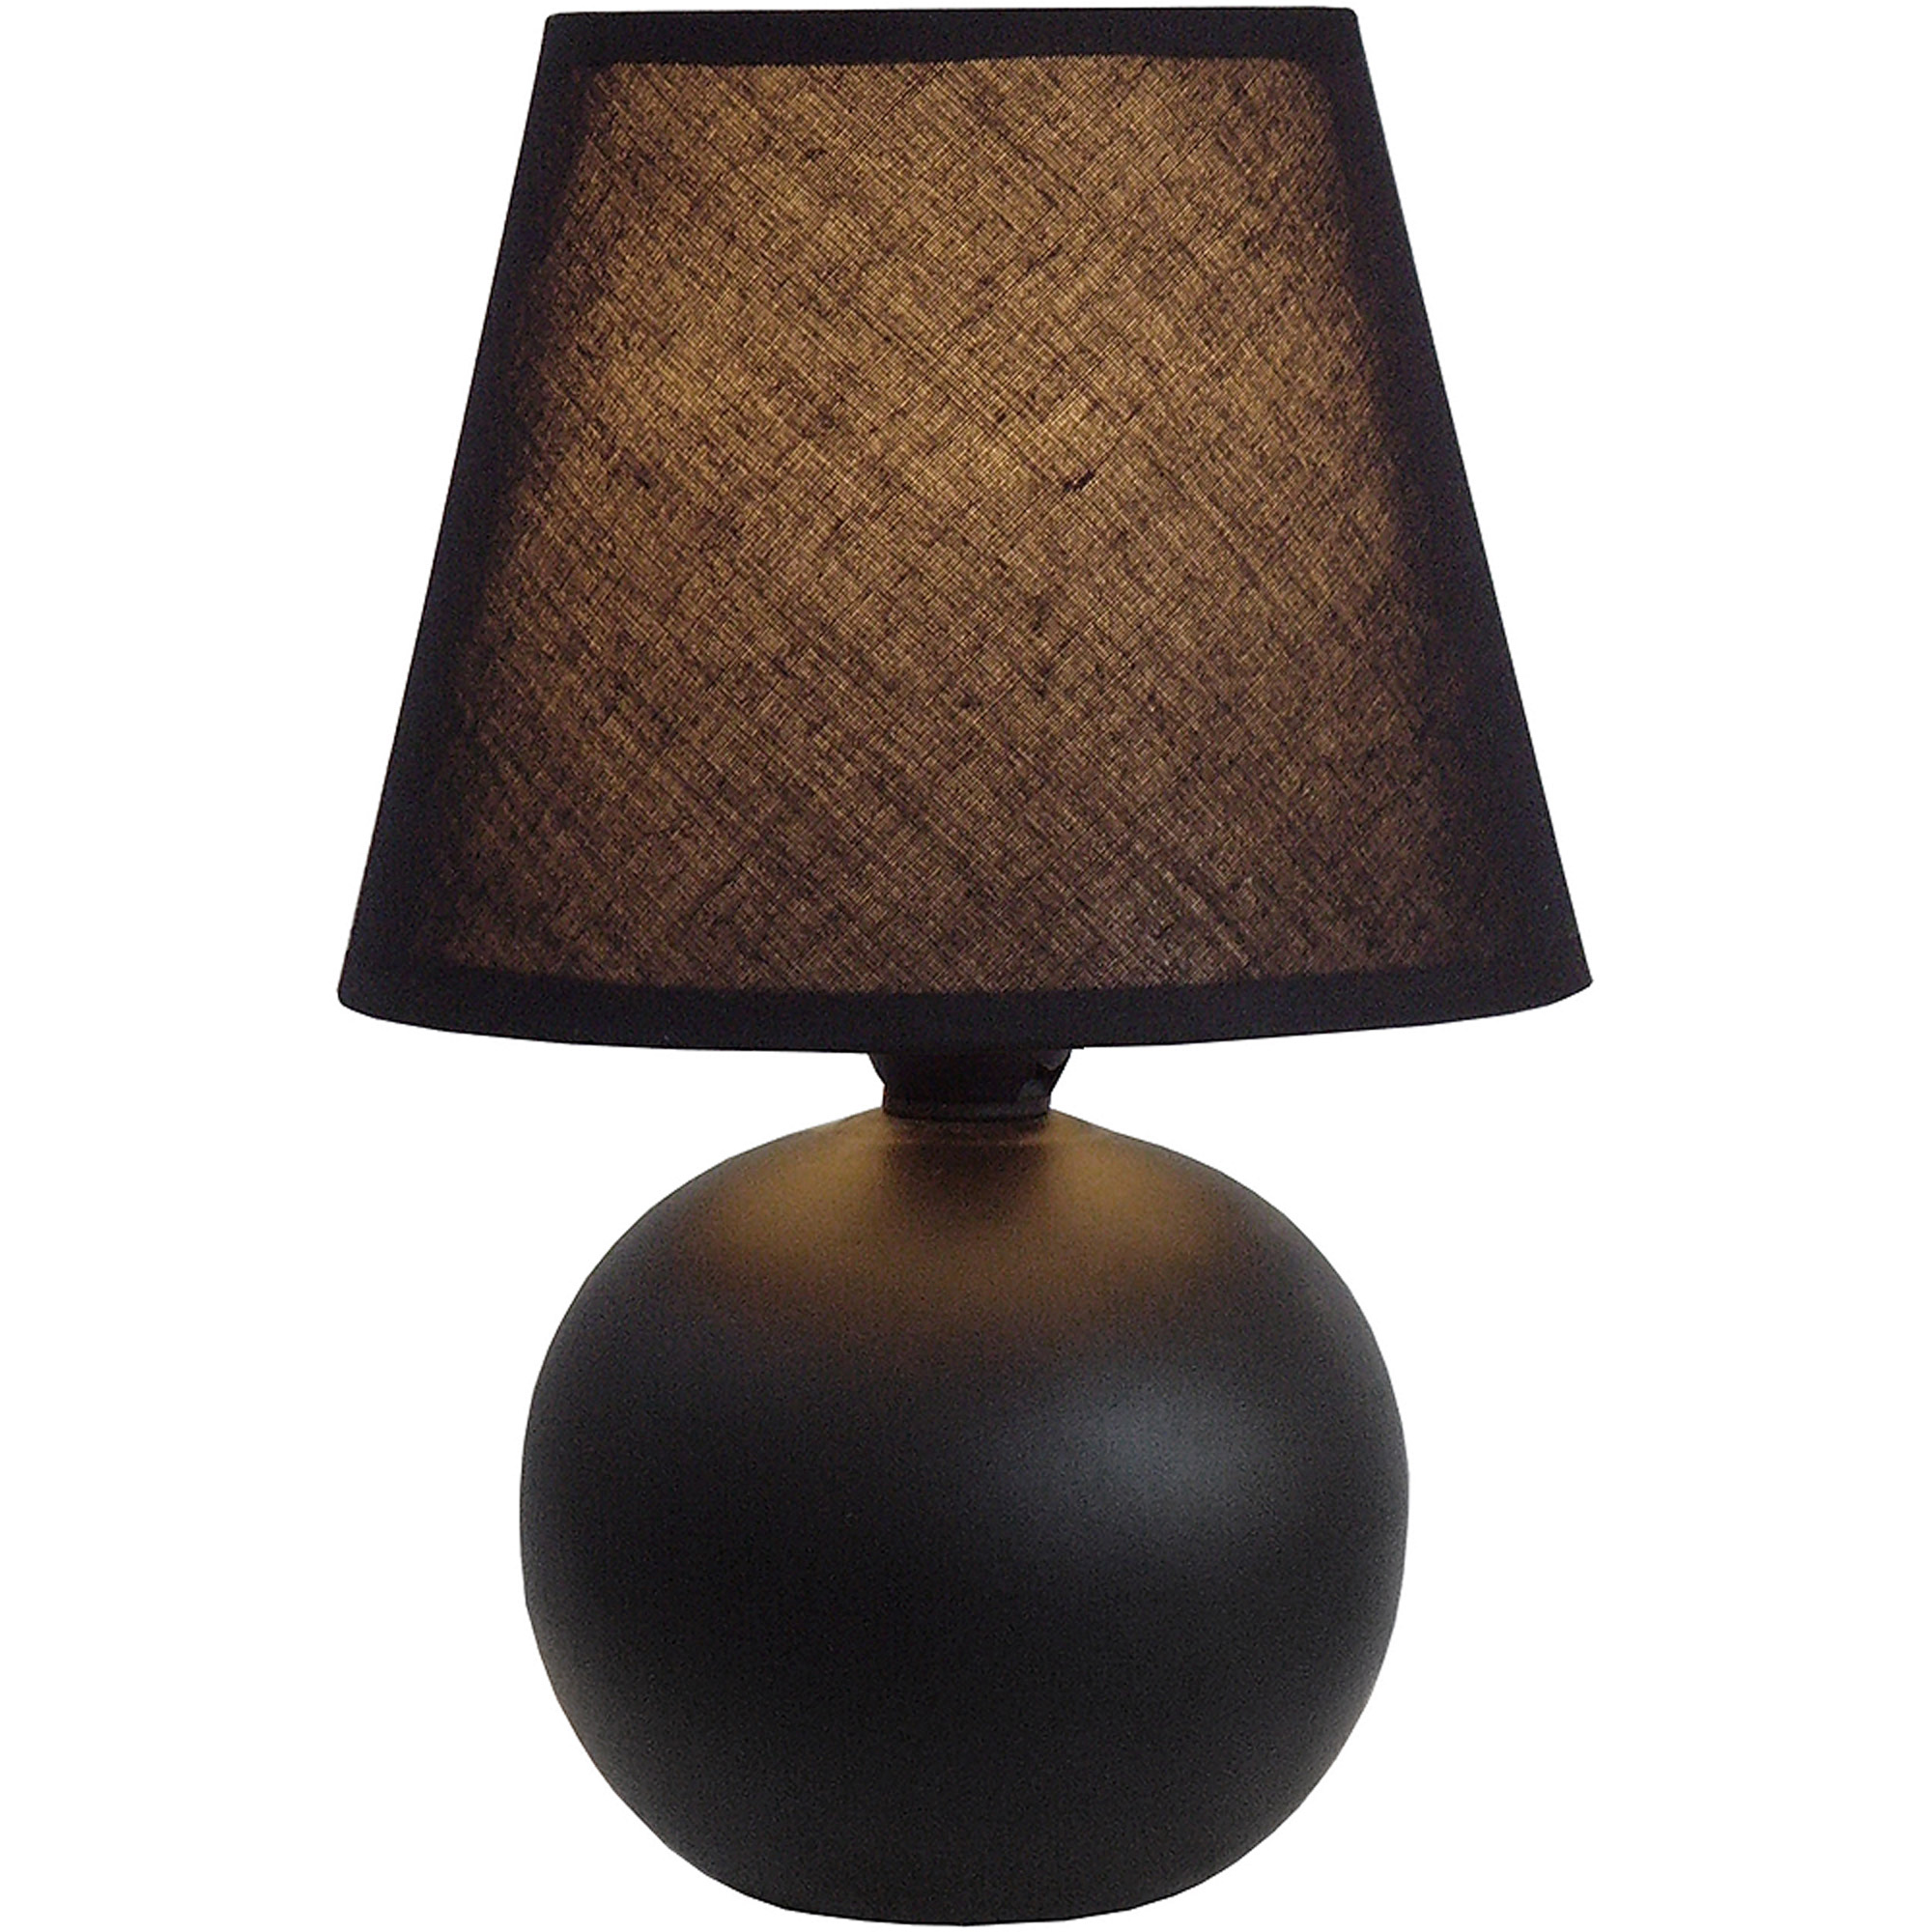 Simple Designs Mini Ceramic Globe Table Lamp